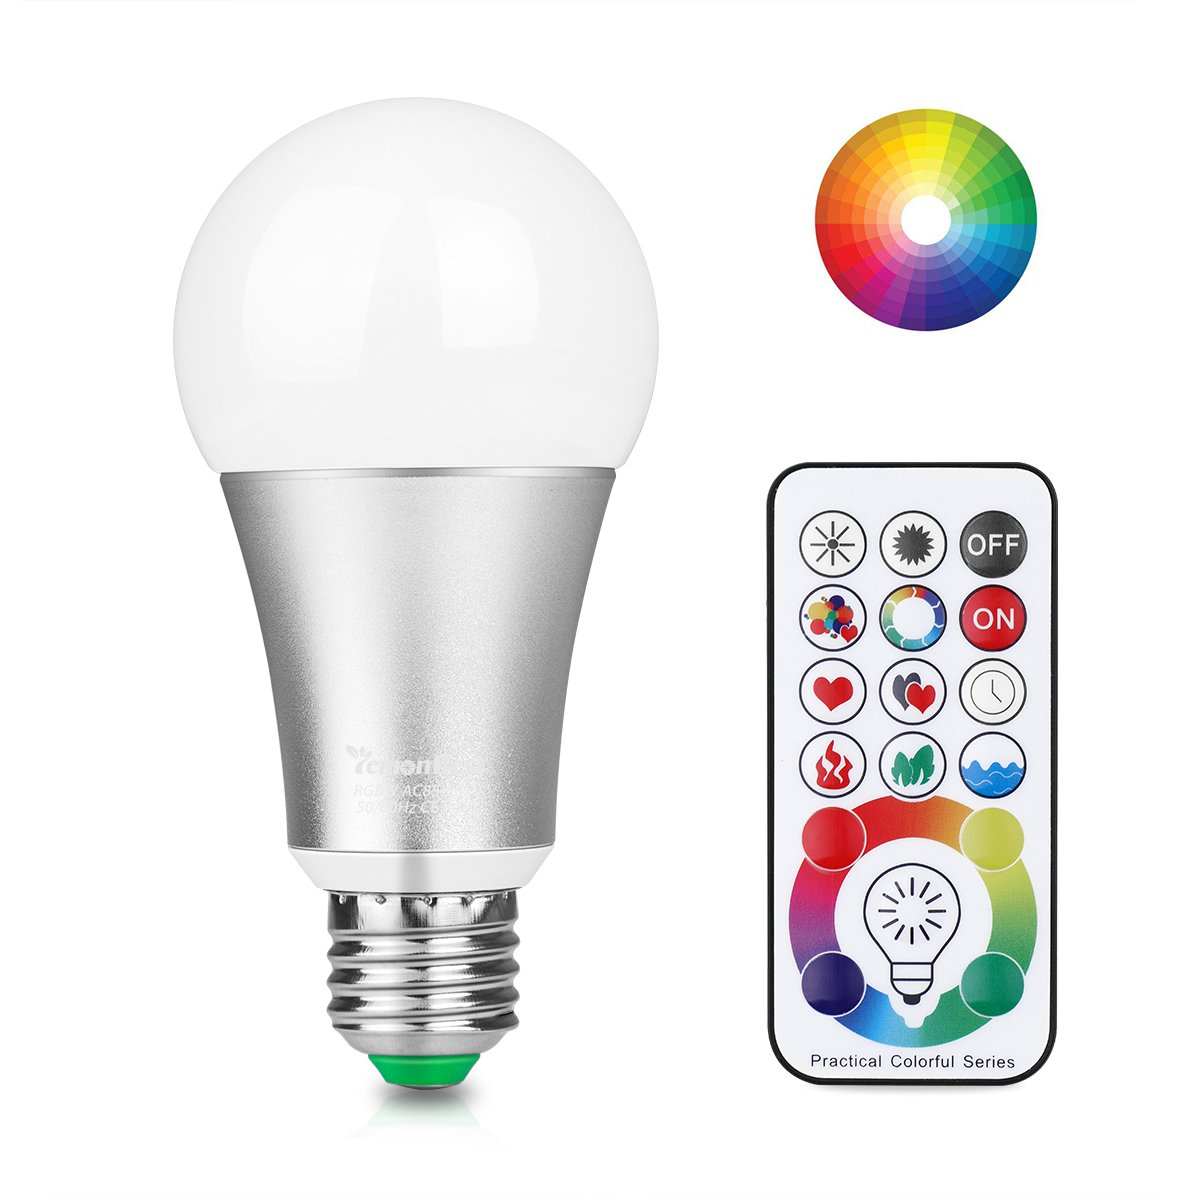 [Updated] Lemonbest 10W E27 Led Colour Changing Light Bulb with Remote Control, 120 Different Colour Choices, RGB+Daylight(6500K) Dimmable, Timming, Dual Memory DIY Collection Function, AC 85-265V ONEVER